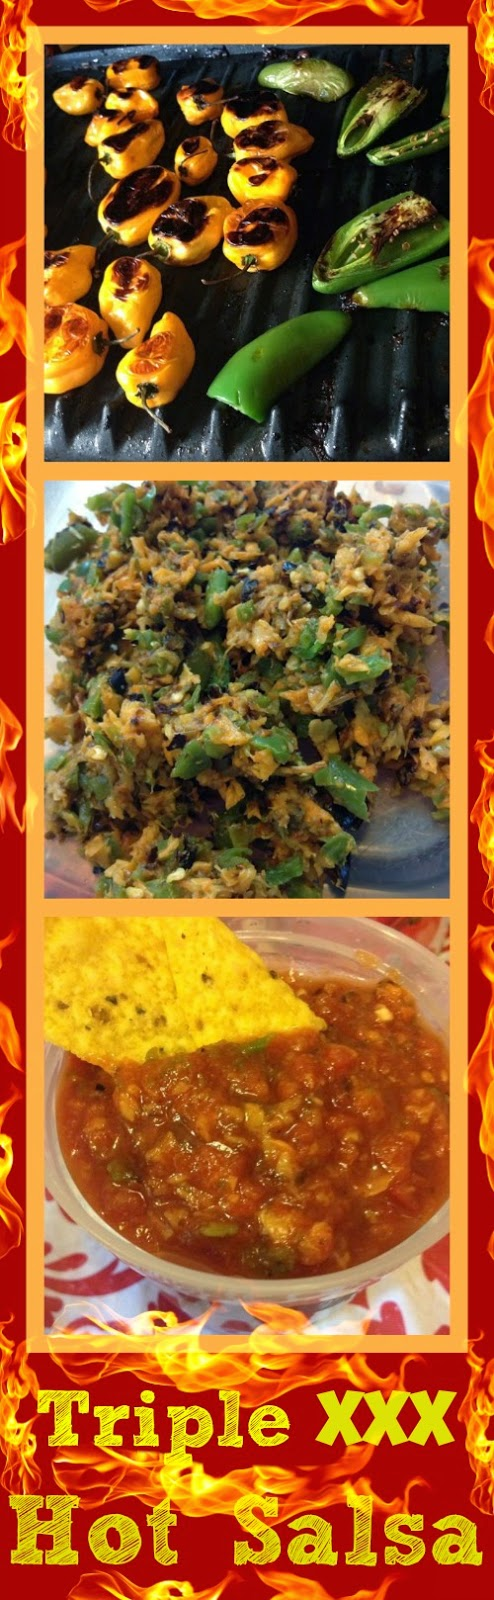 Homemade Mexican Xxx with regard to triple xxx hot salsa recipe. #cambiaticlean and #spicy! | mexican